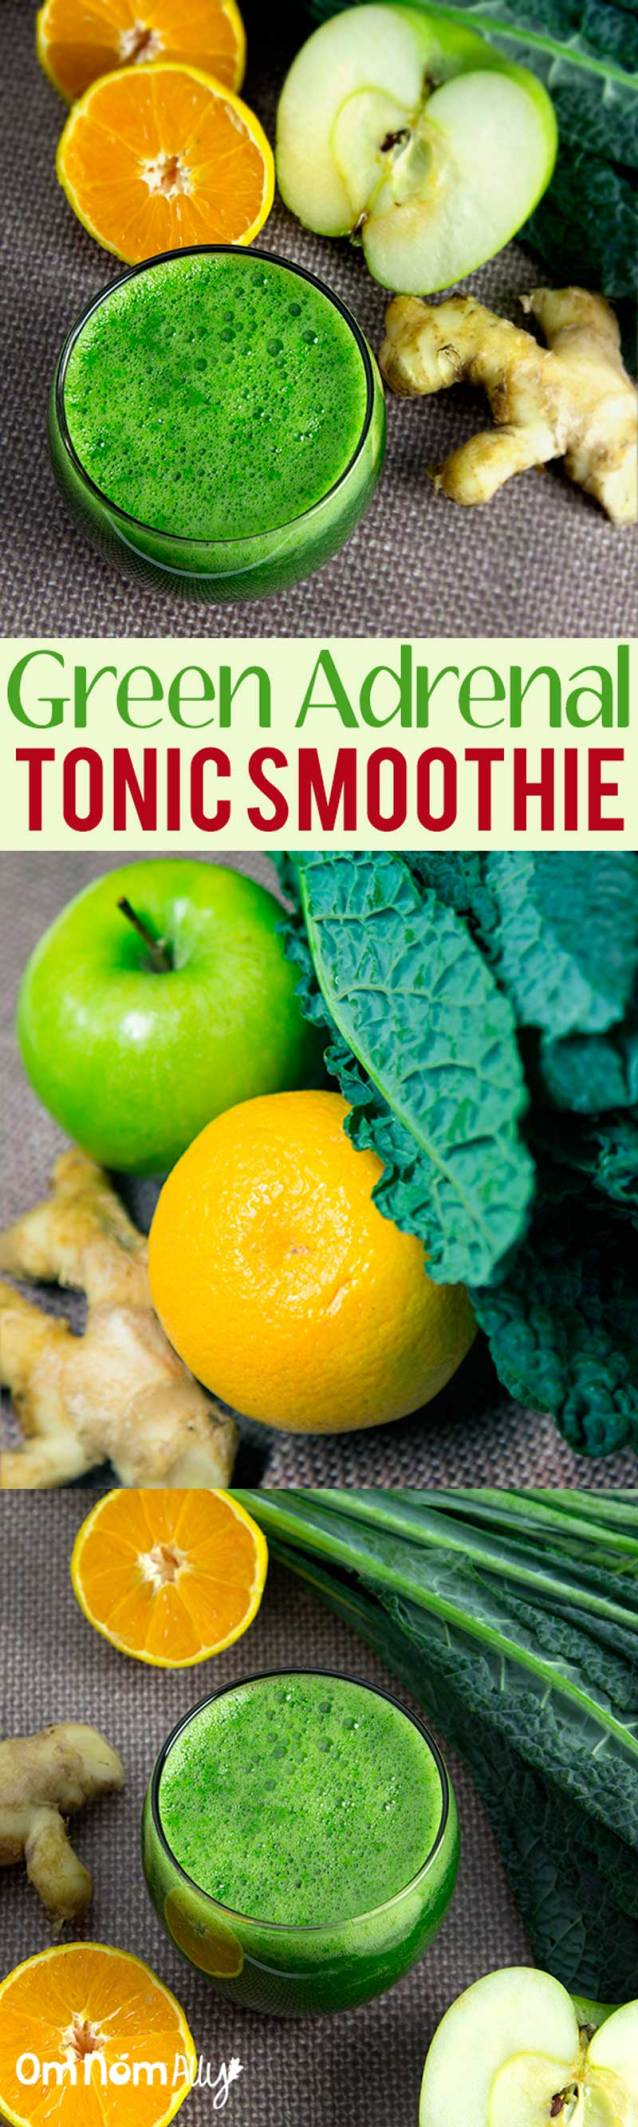 Green Adrenal Tonic Smoothie @OmNomAlly